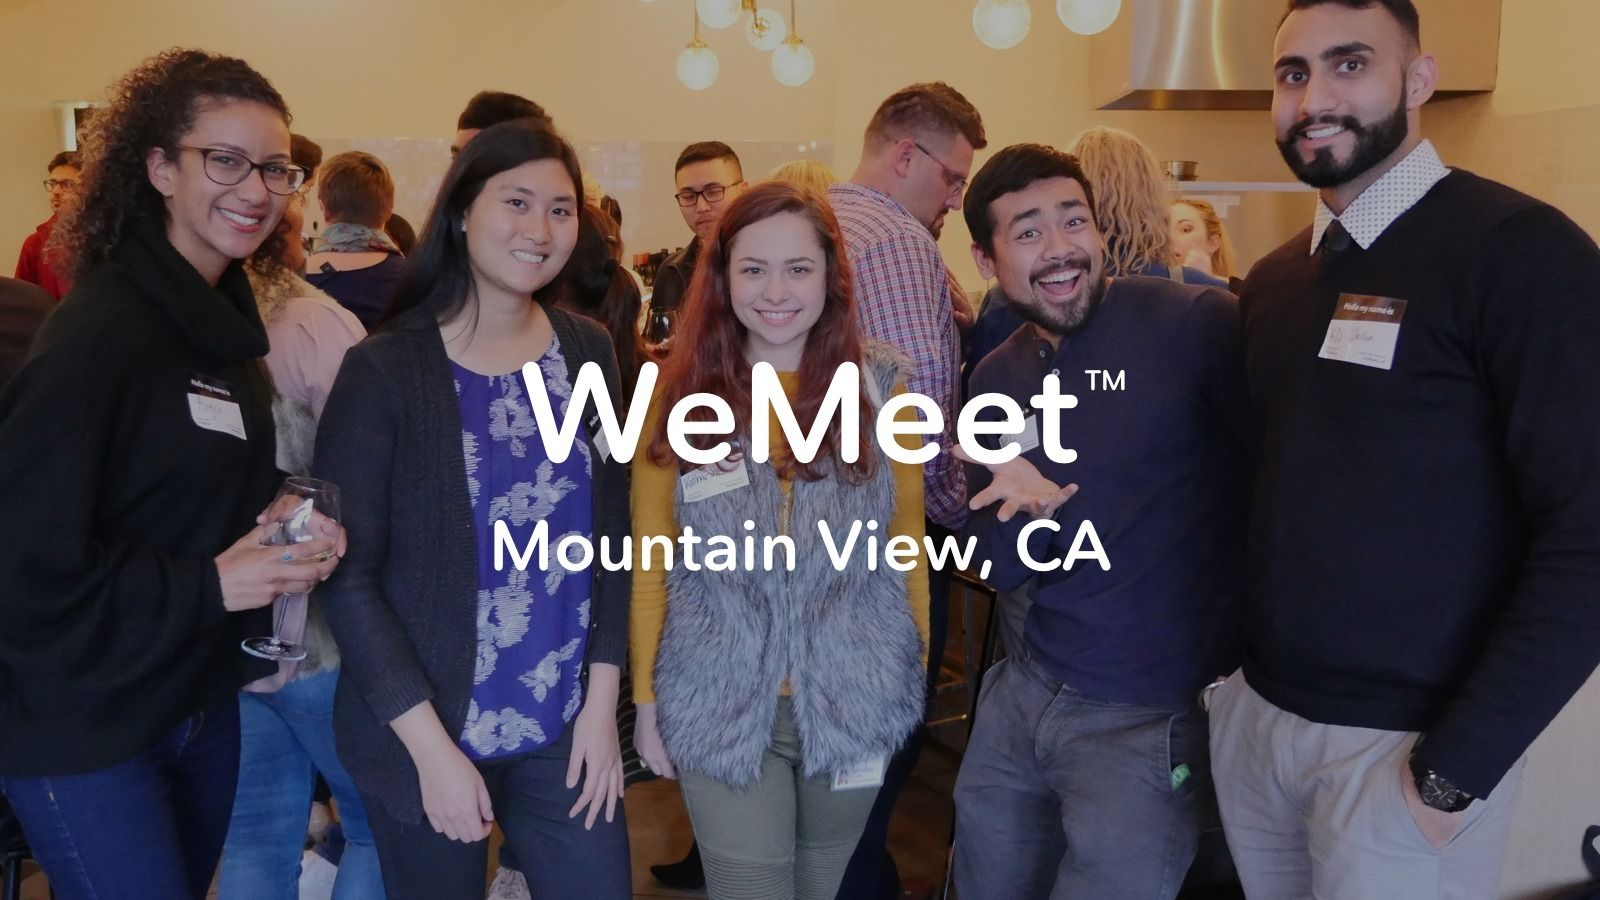 WeMeet Mountain View Networking - Meet New People